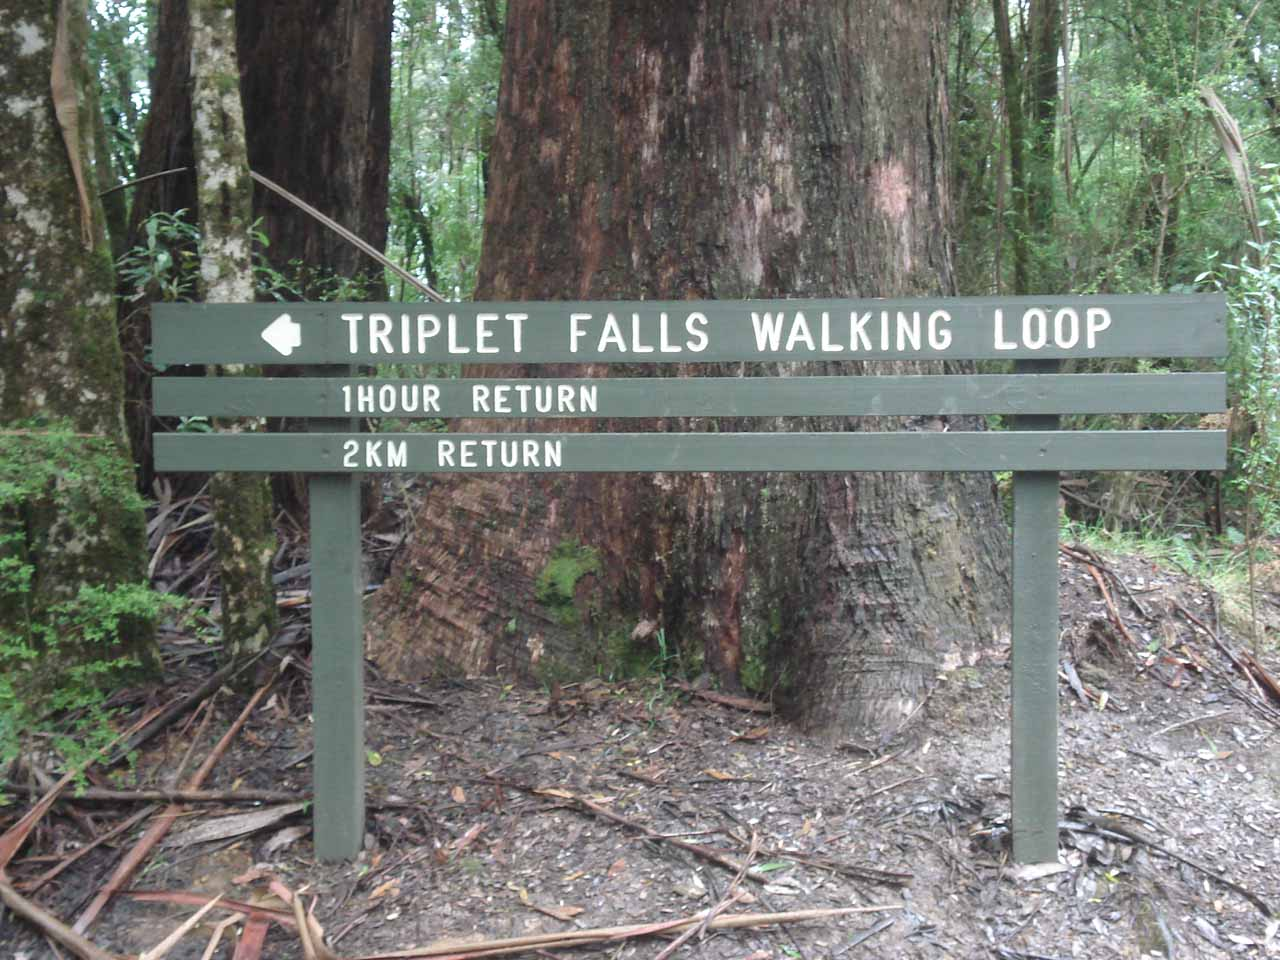 The signpost at the trailhead telling us what we were in for when trying to visit Triplet Falls